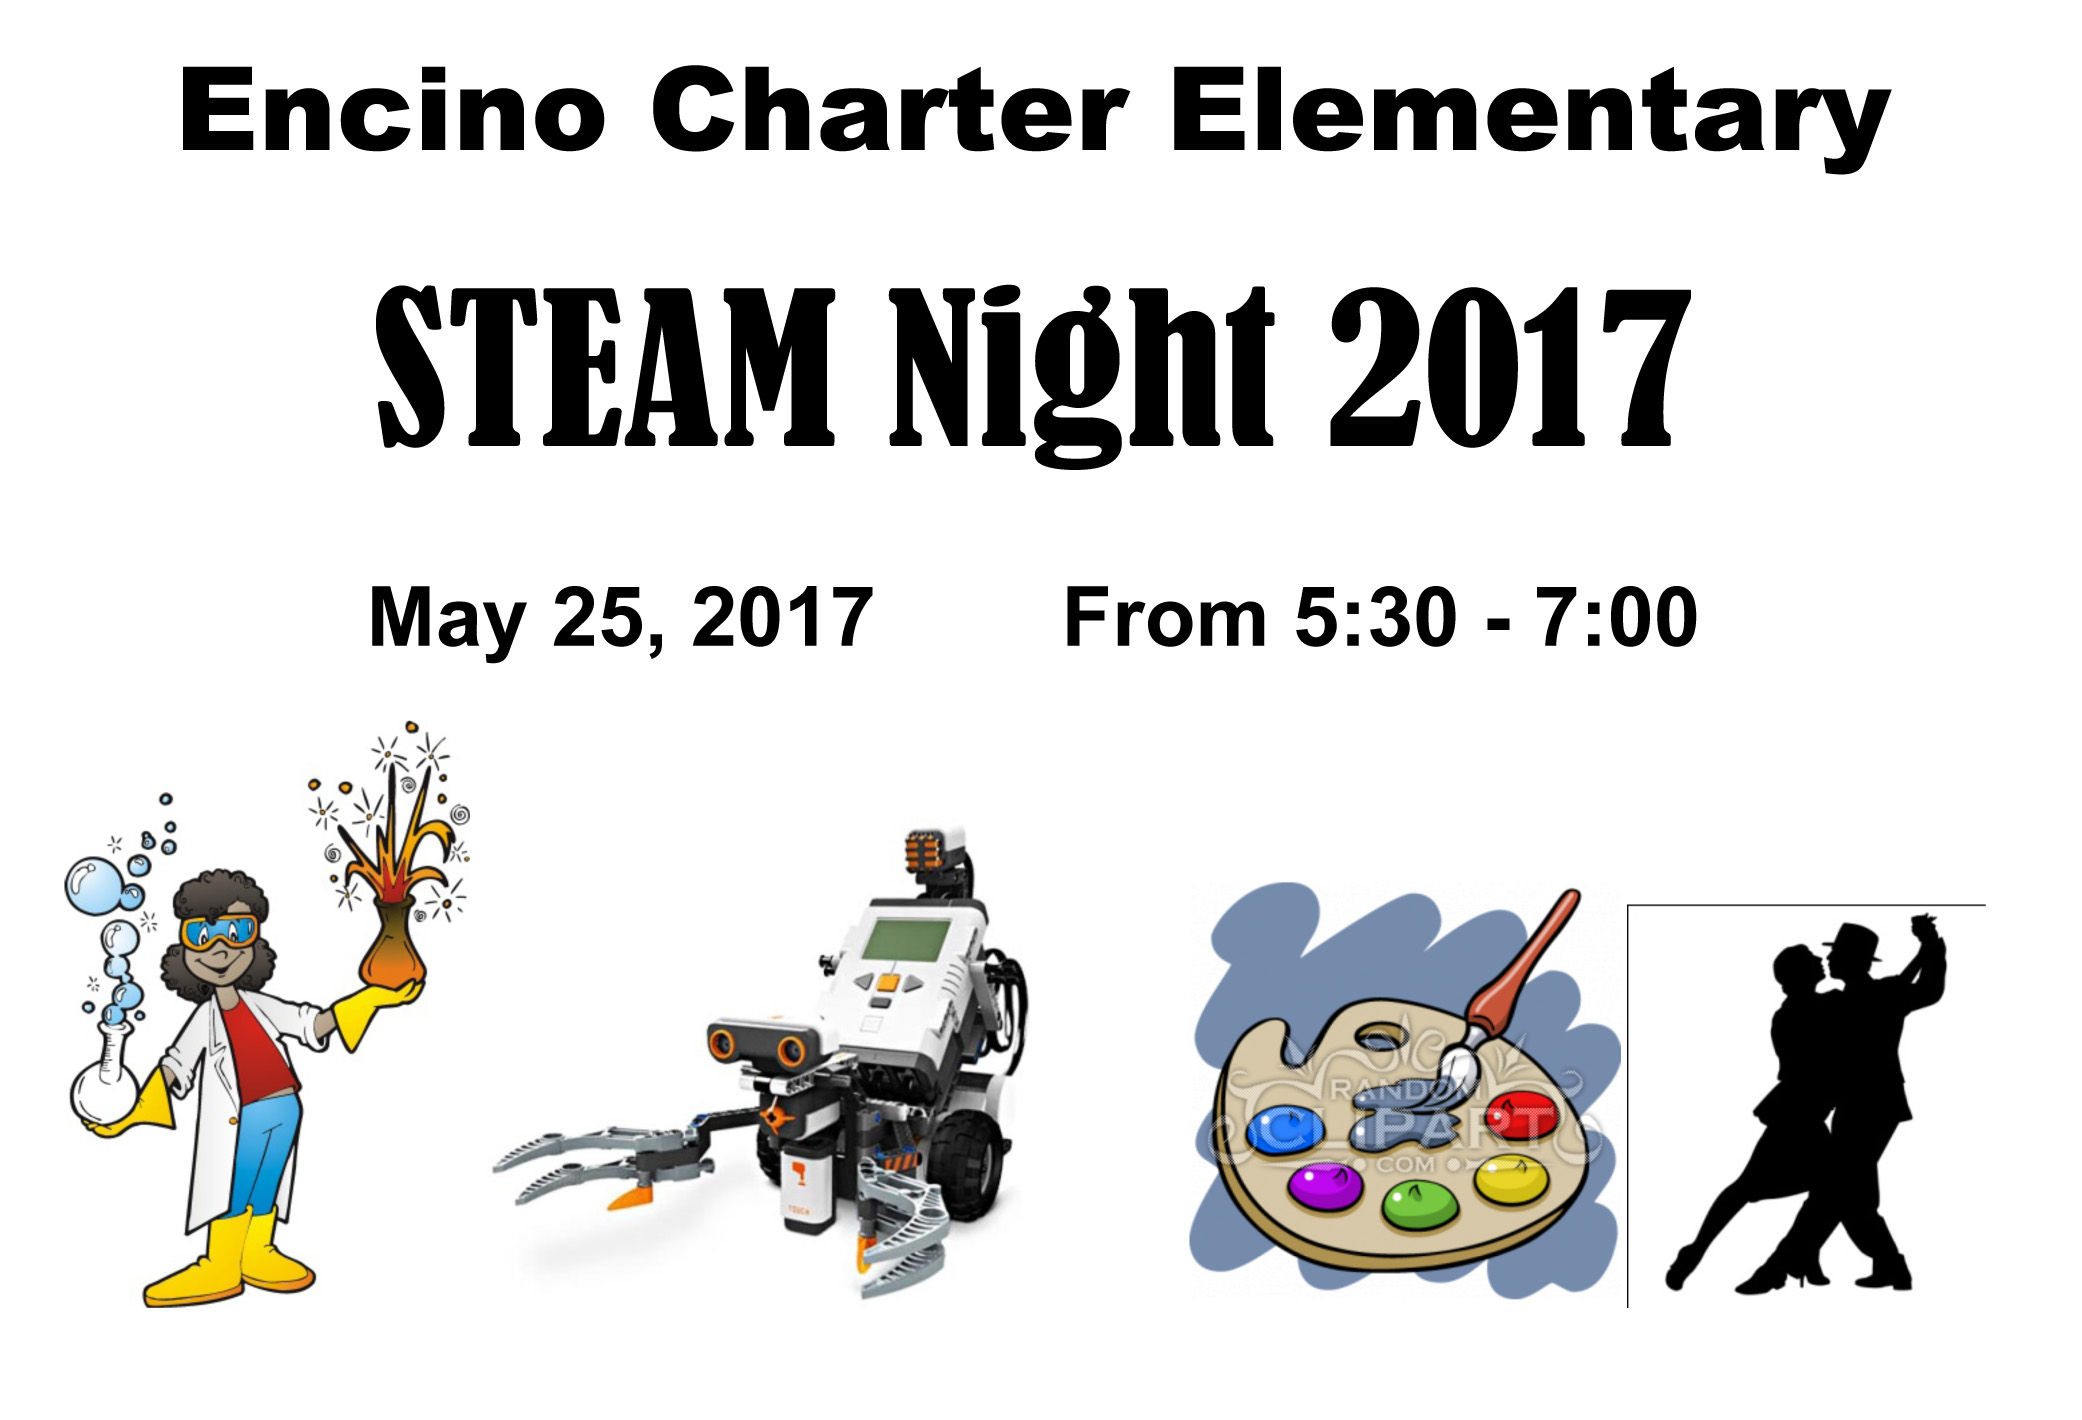 STEAM NIGHT 2017